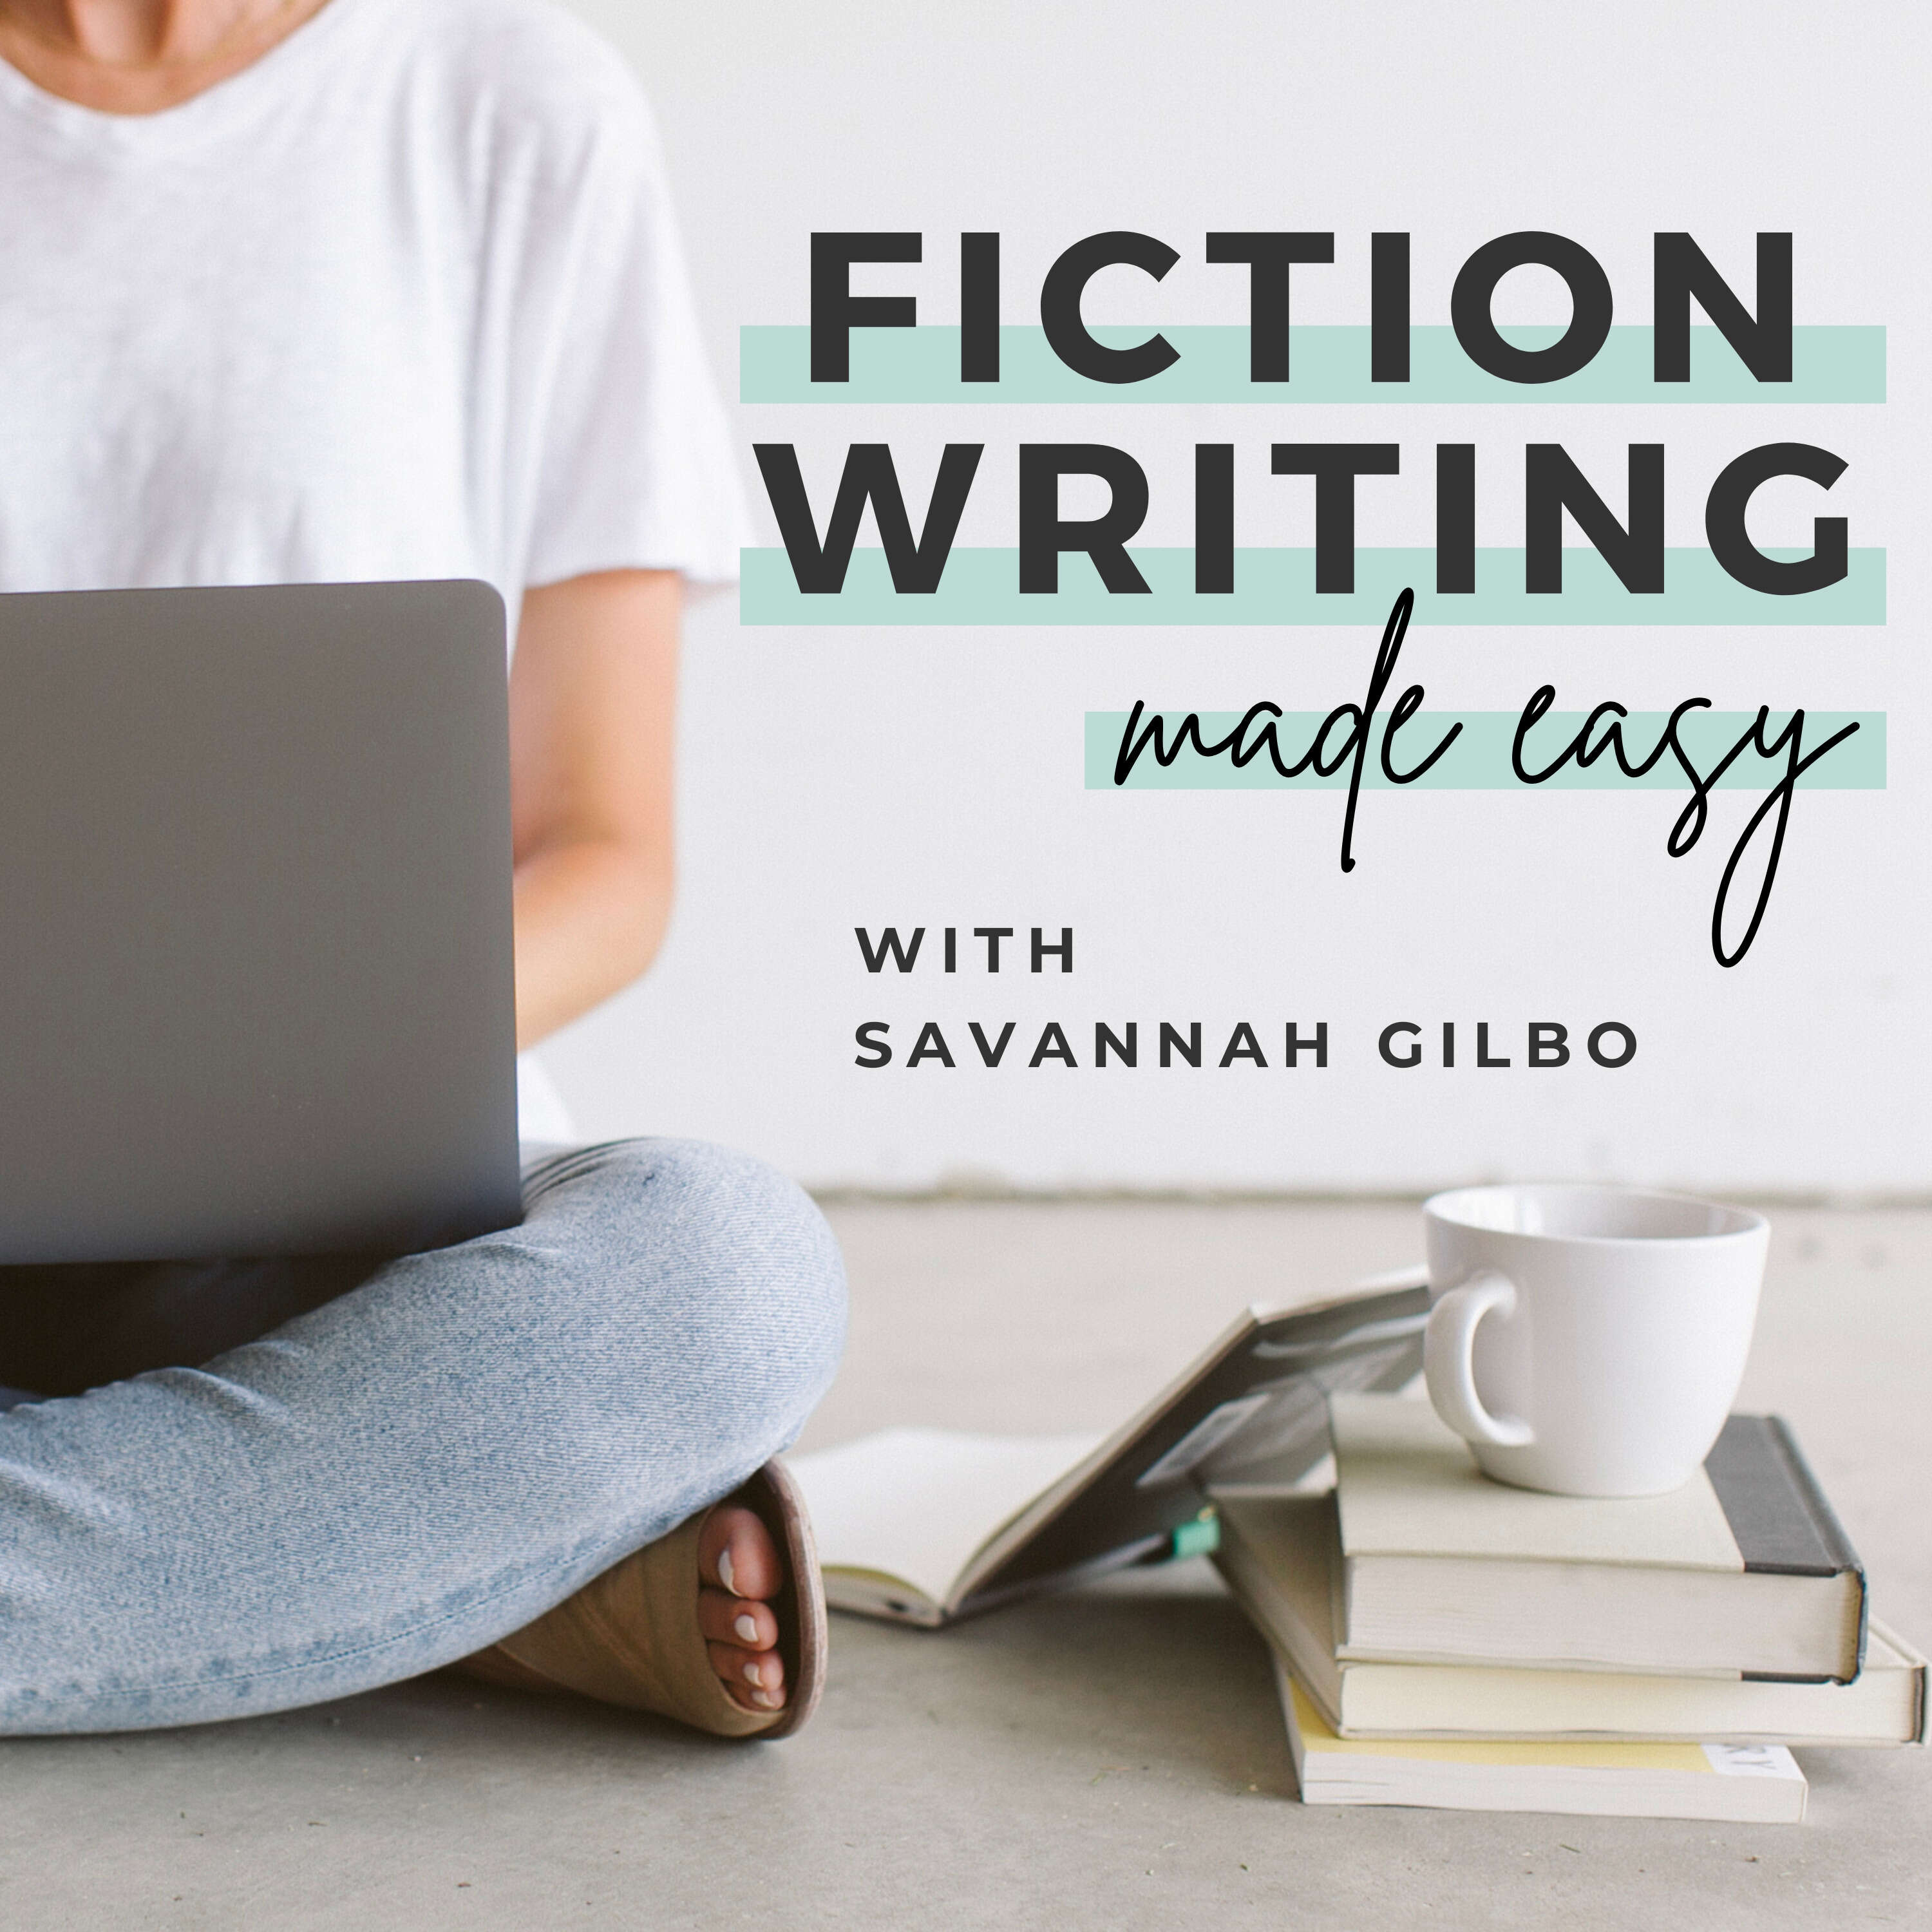 Fiction Writing Made Easy